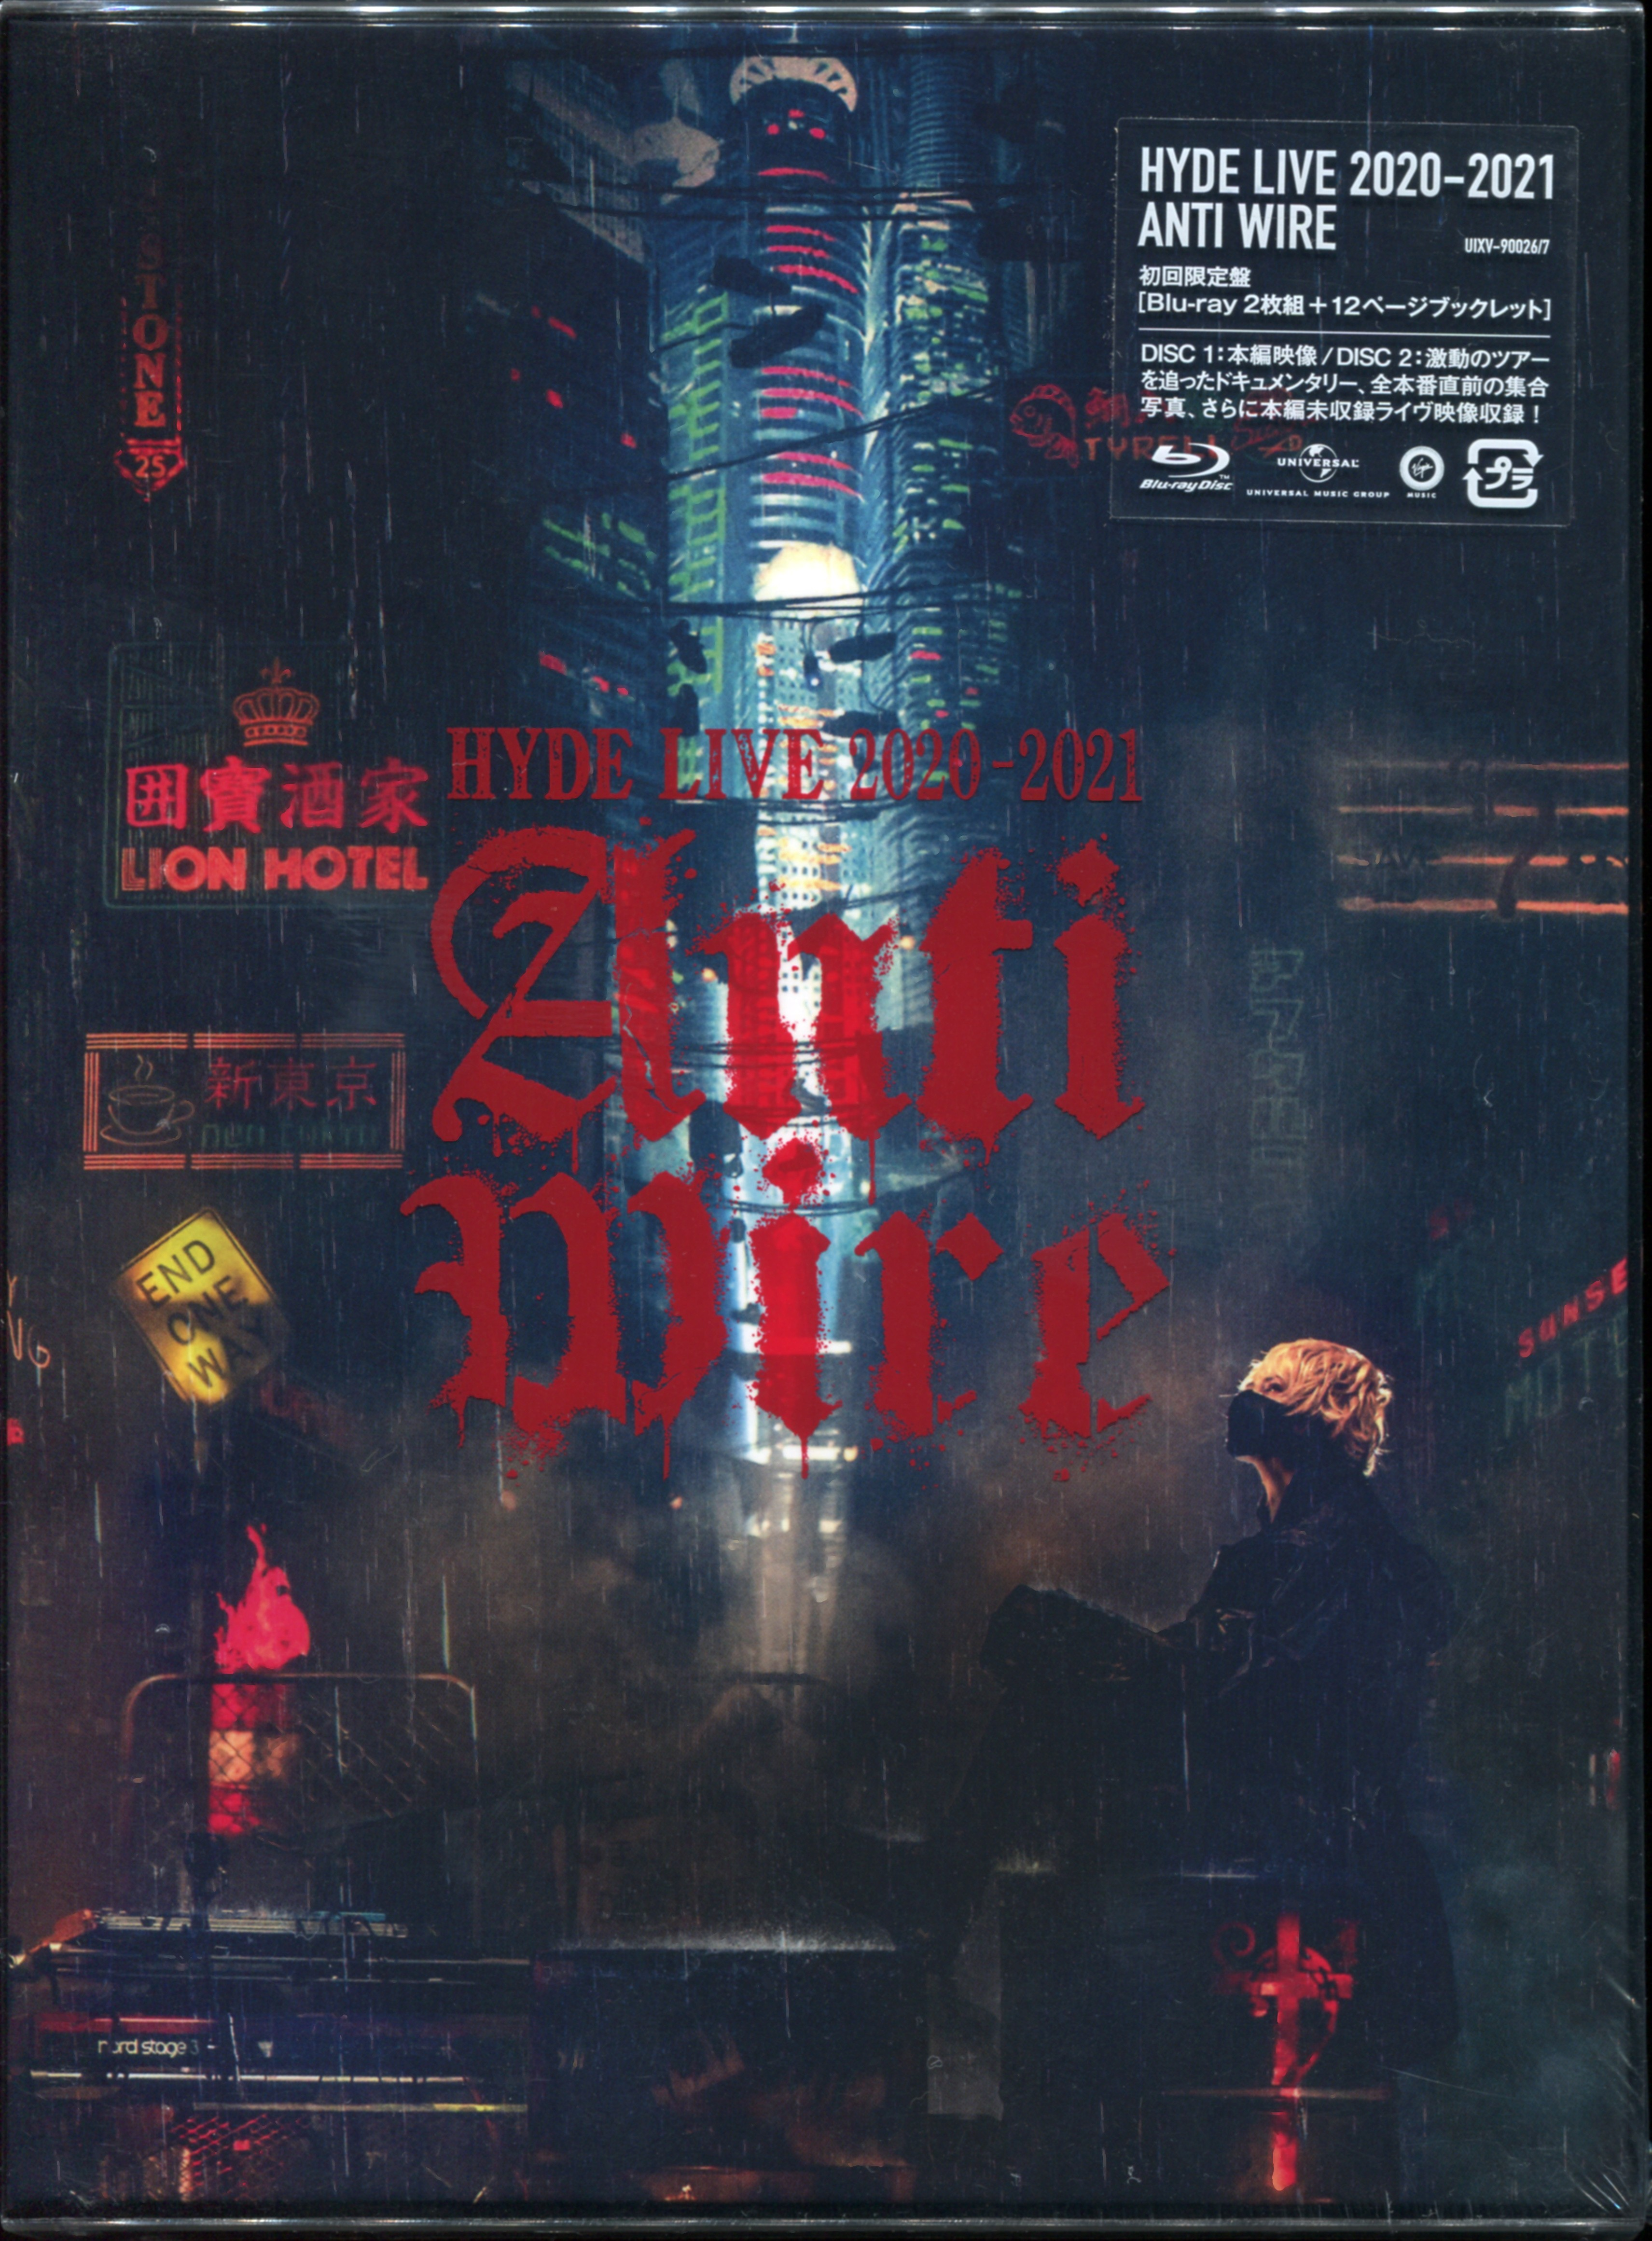 HYDE – HYDE LIVE 2020-2021 ANTI WIRE [FLAC + MP3 320 + Blu-ray ISO] [2021.05.26]